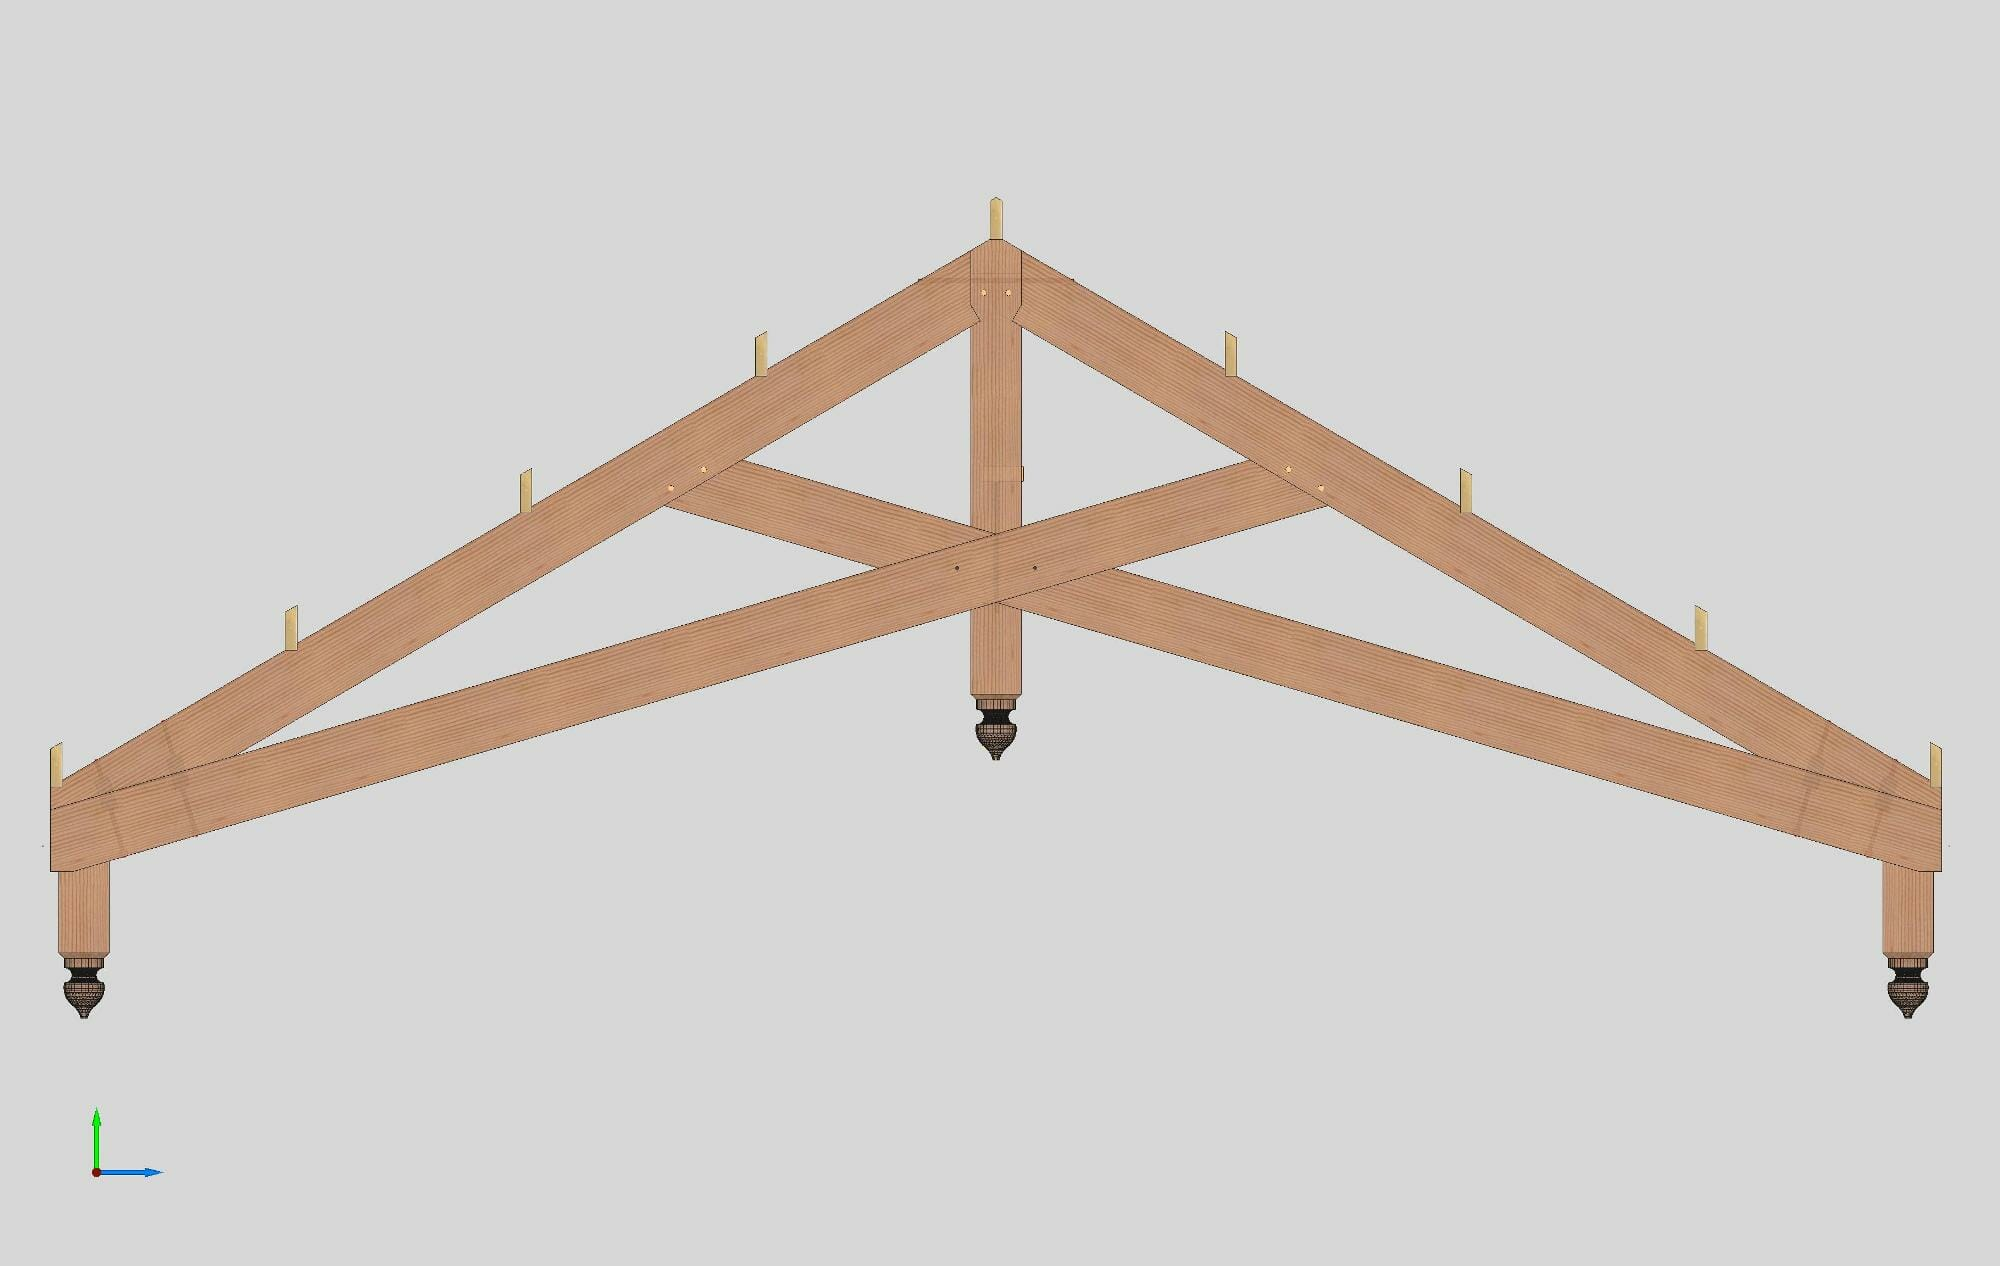 timber truss designs featuring the scissor truss